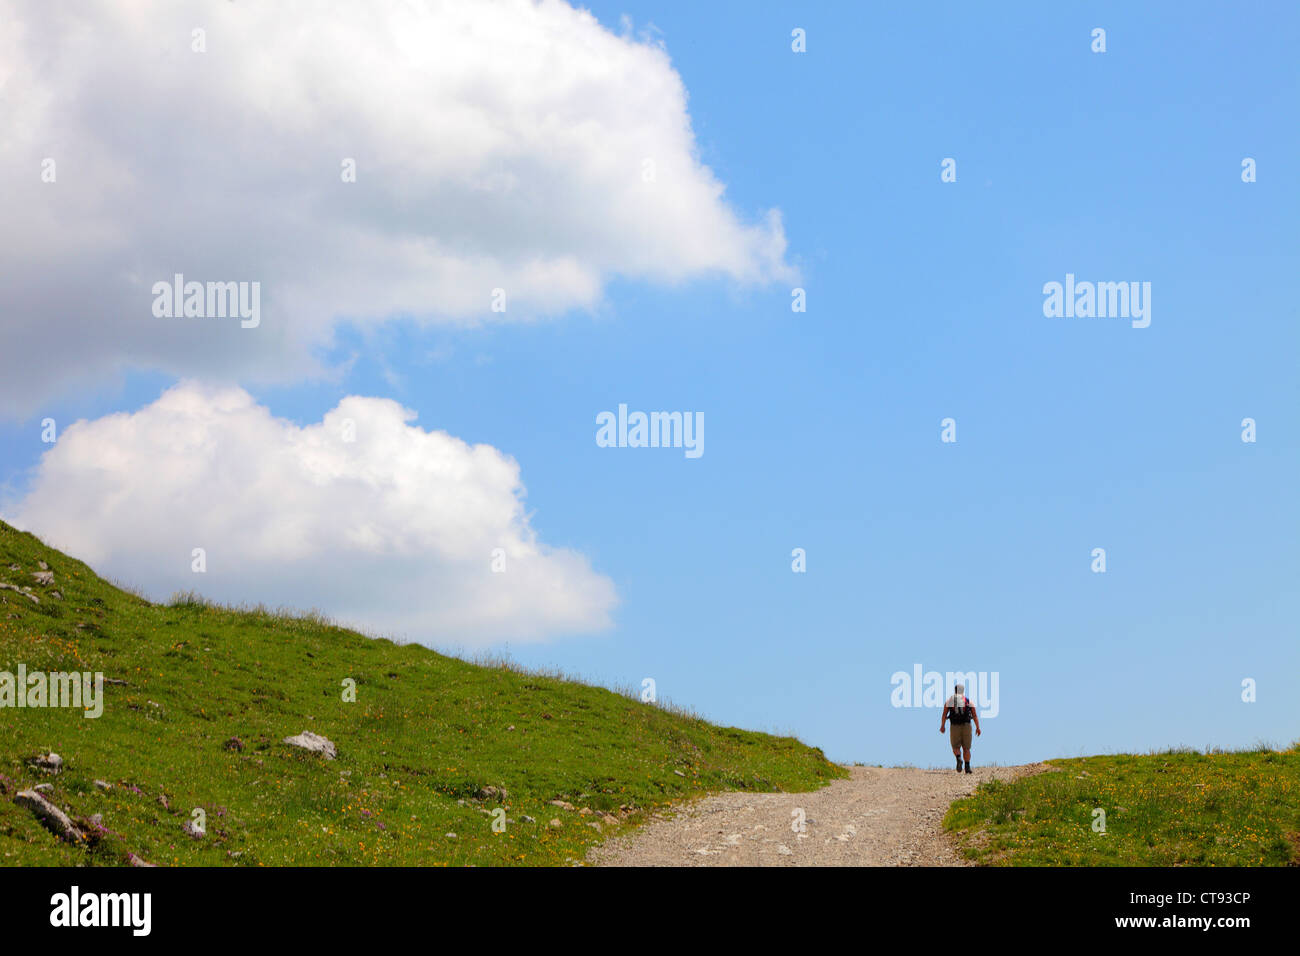 Mountain hiking path in the Mangfall mountains, Bavarian alps. - Stock Image